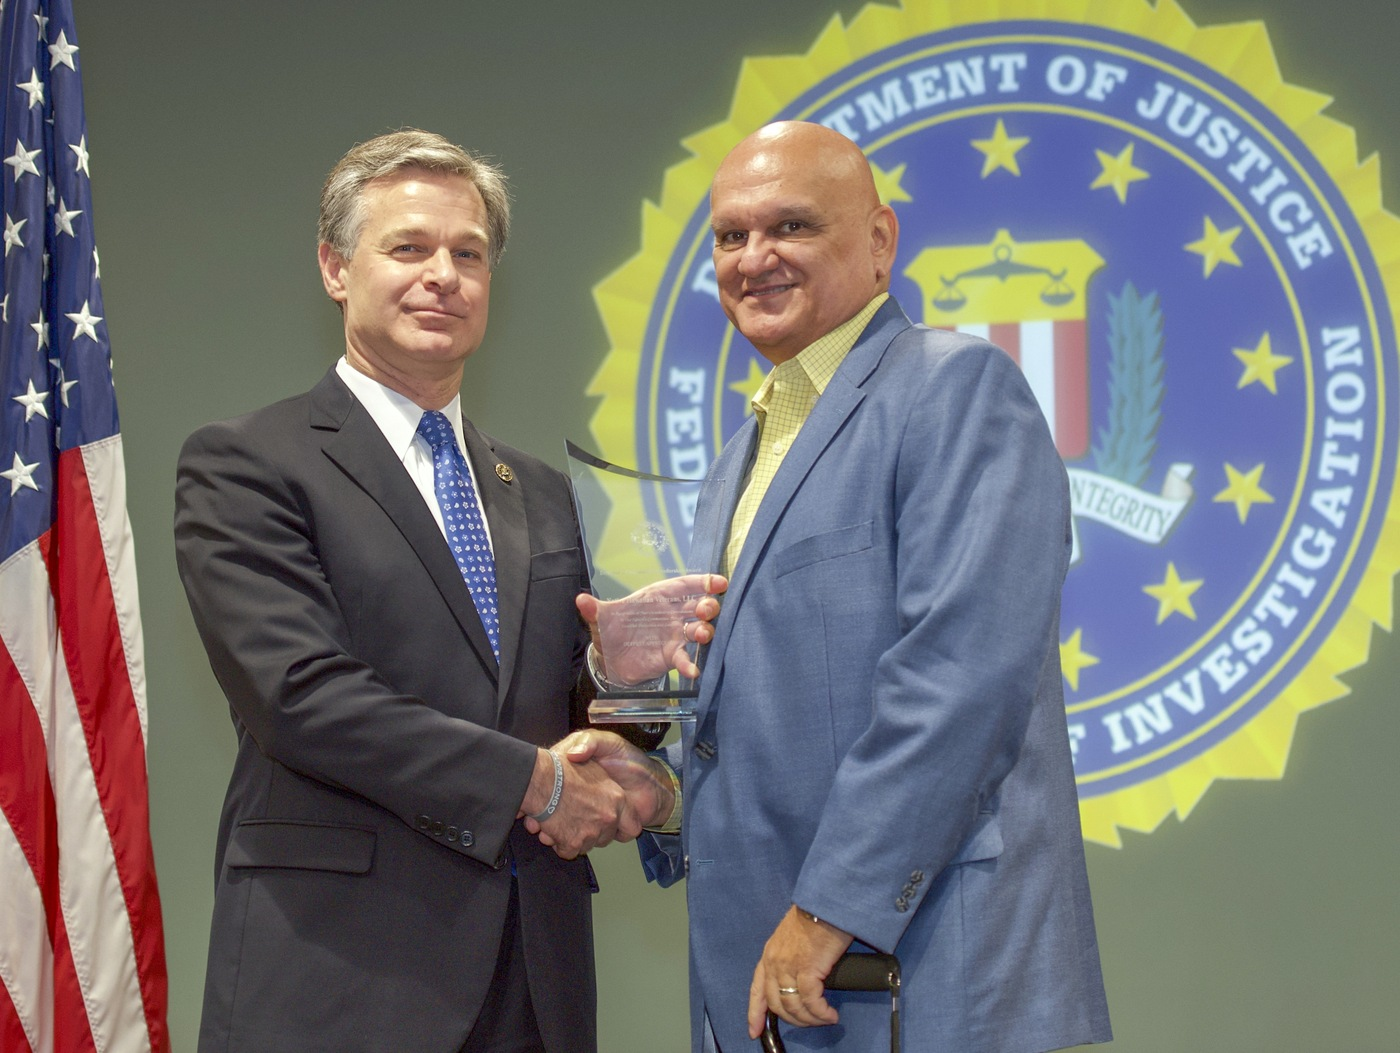 FBI Director Christopher Wray presents Honolulu Division recipient Native Hawaiian Veterans, LLC (represented by Raymond Jardine, Jr.) with the Director's Community Leadership Award (DCLA) at a ceremony at FBI Headquarters on May 3, 2019.